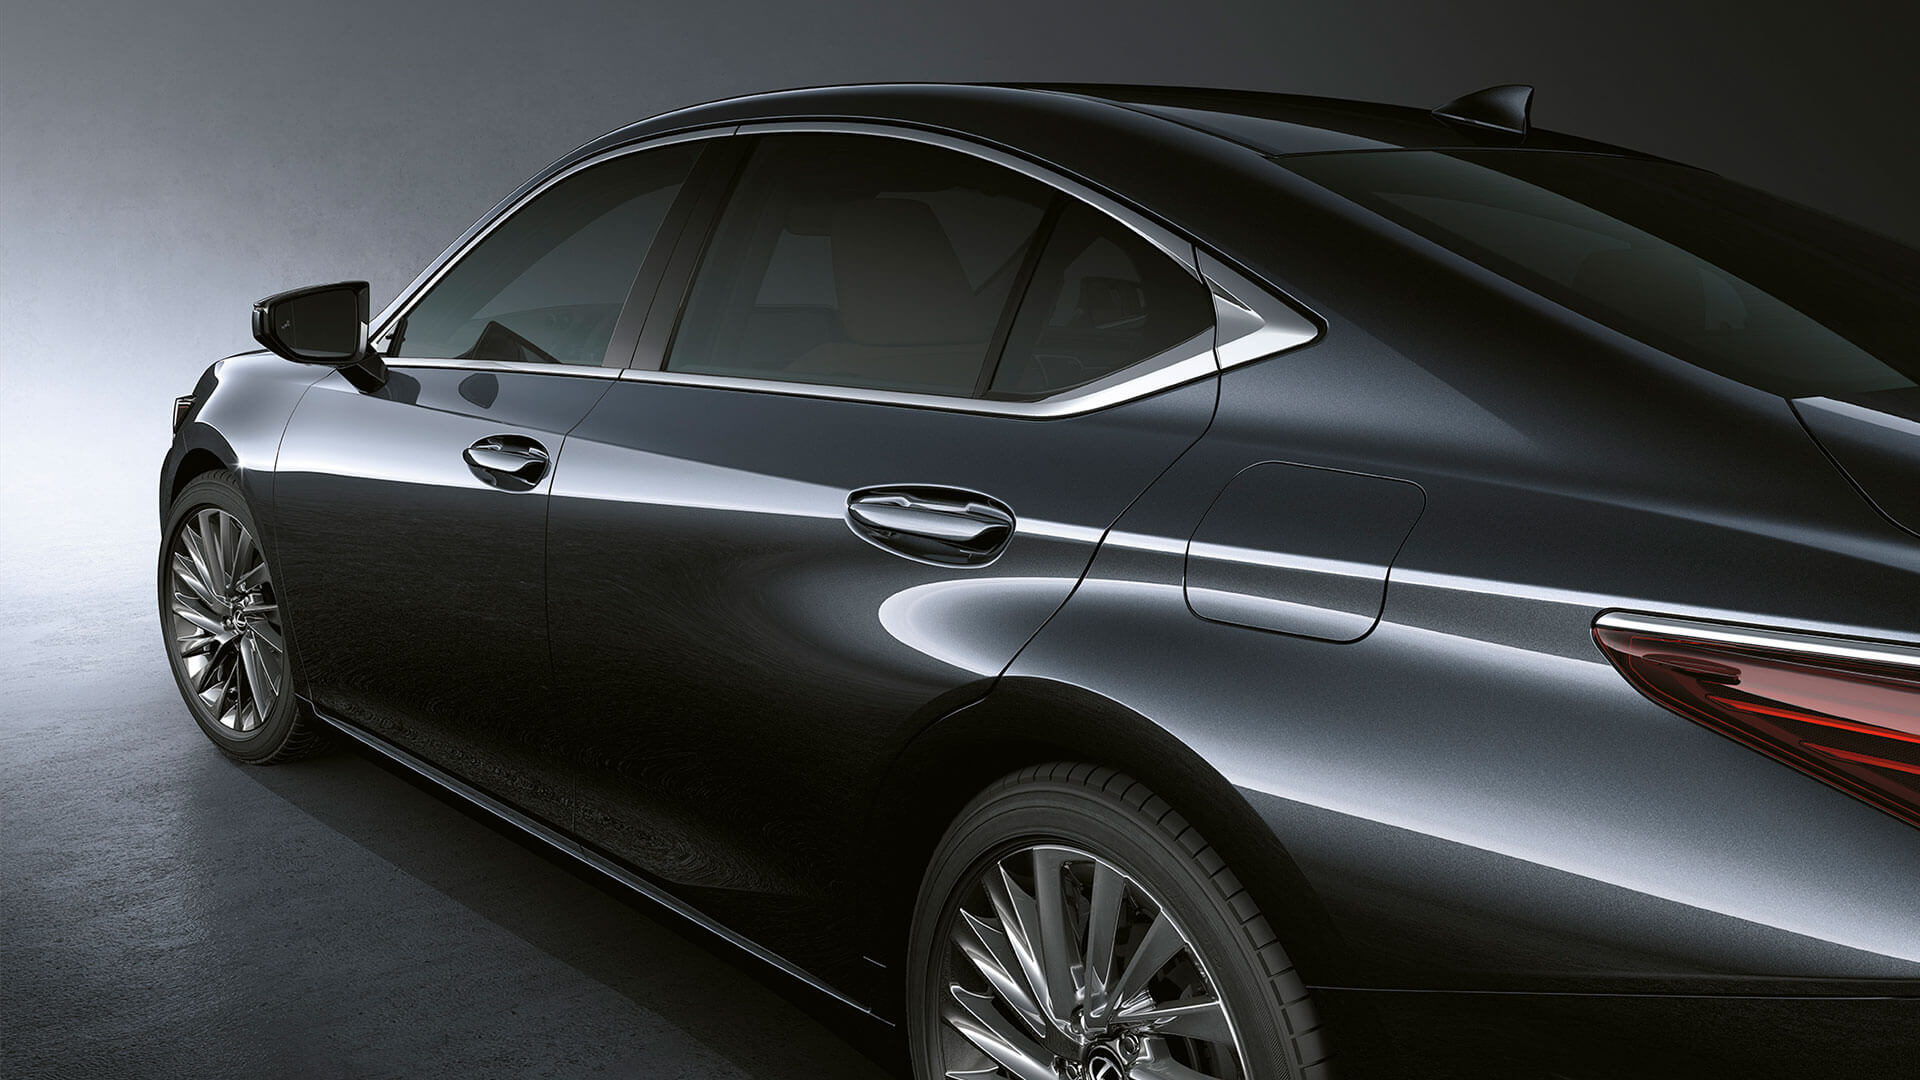 2019 lexus es 250 experience feature coupe like silhouette